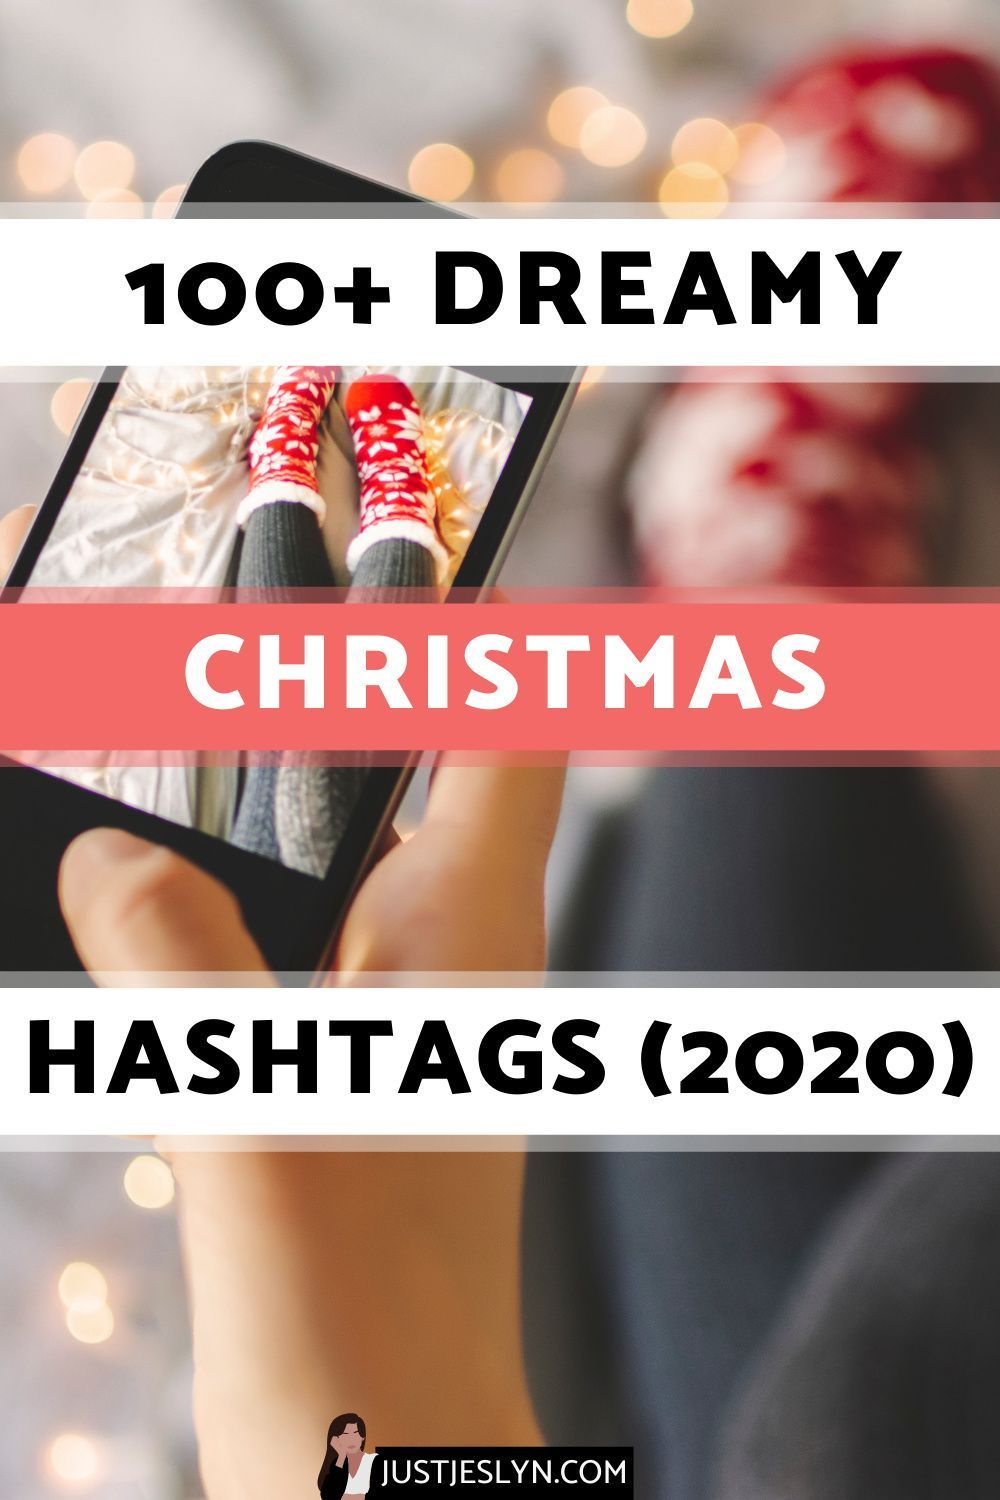 Top Christmas Hashtags 2020 100+ Dreamy Christmas Instagram Hashtags (2020) | Just Jes Lyn in